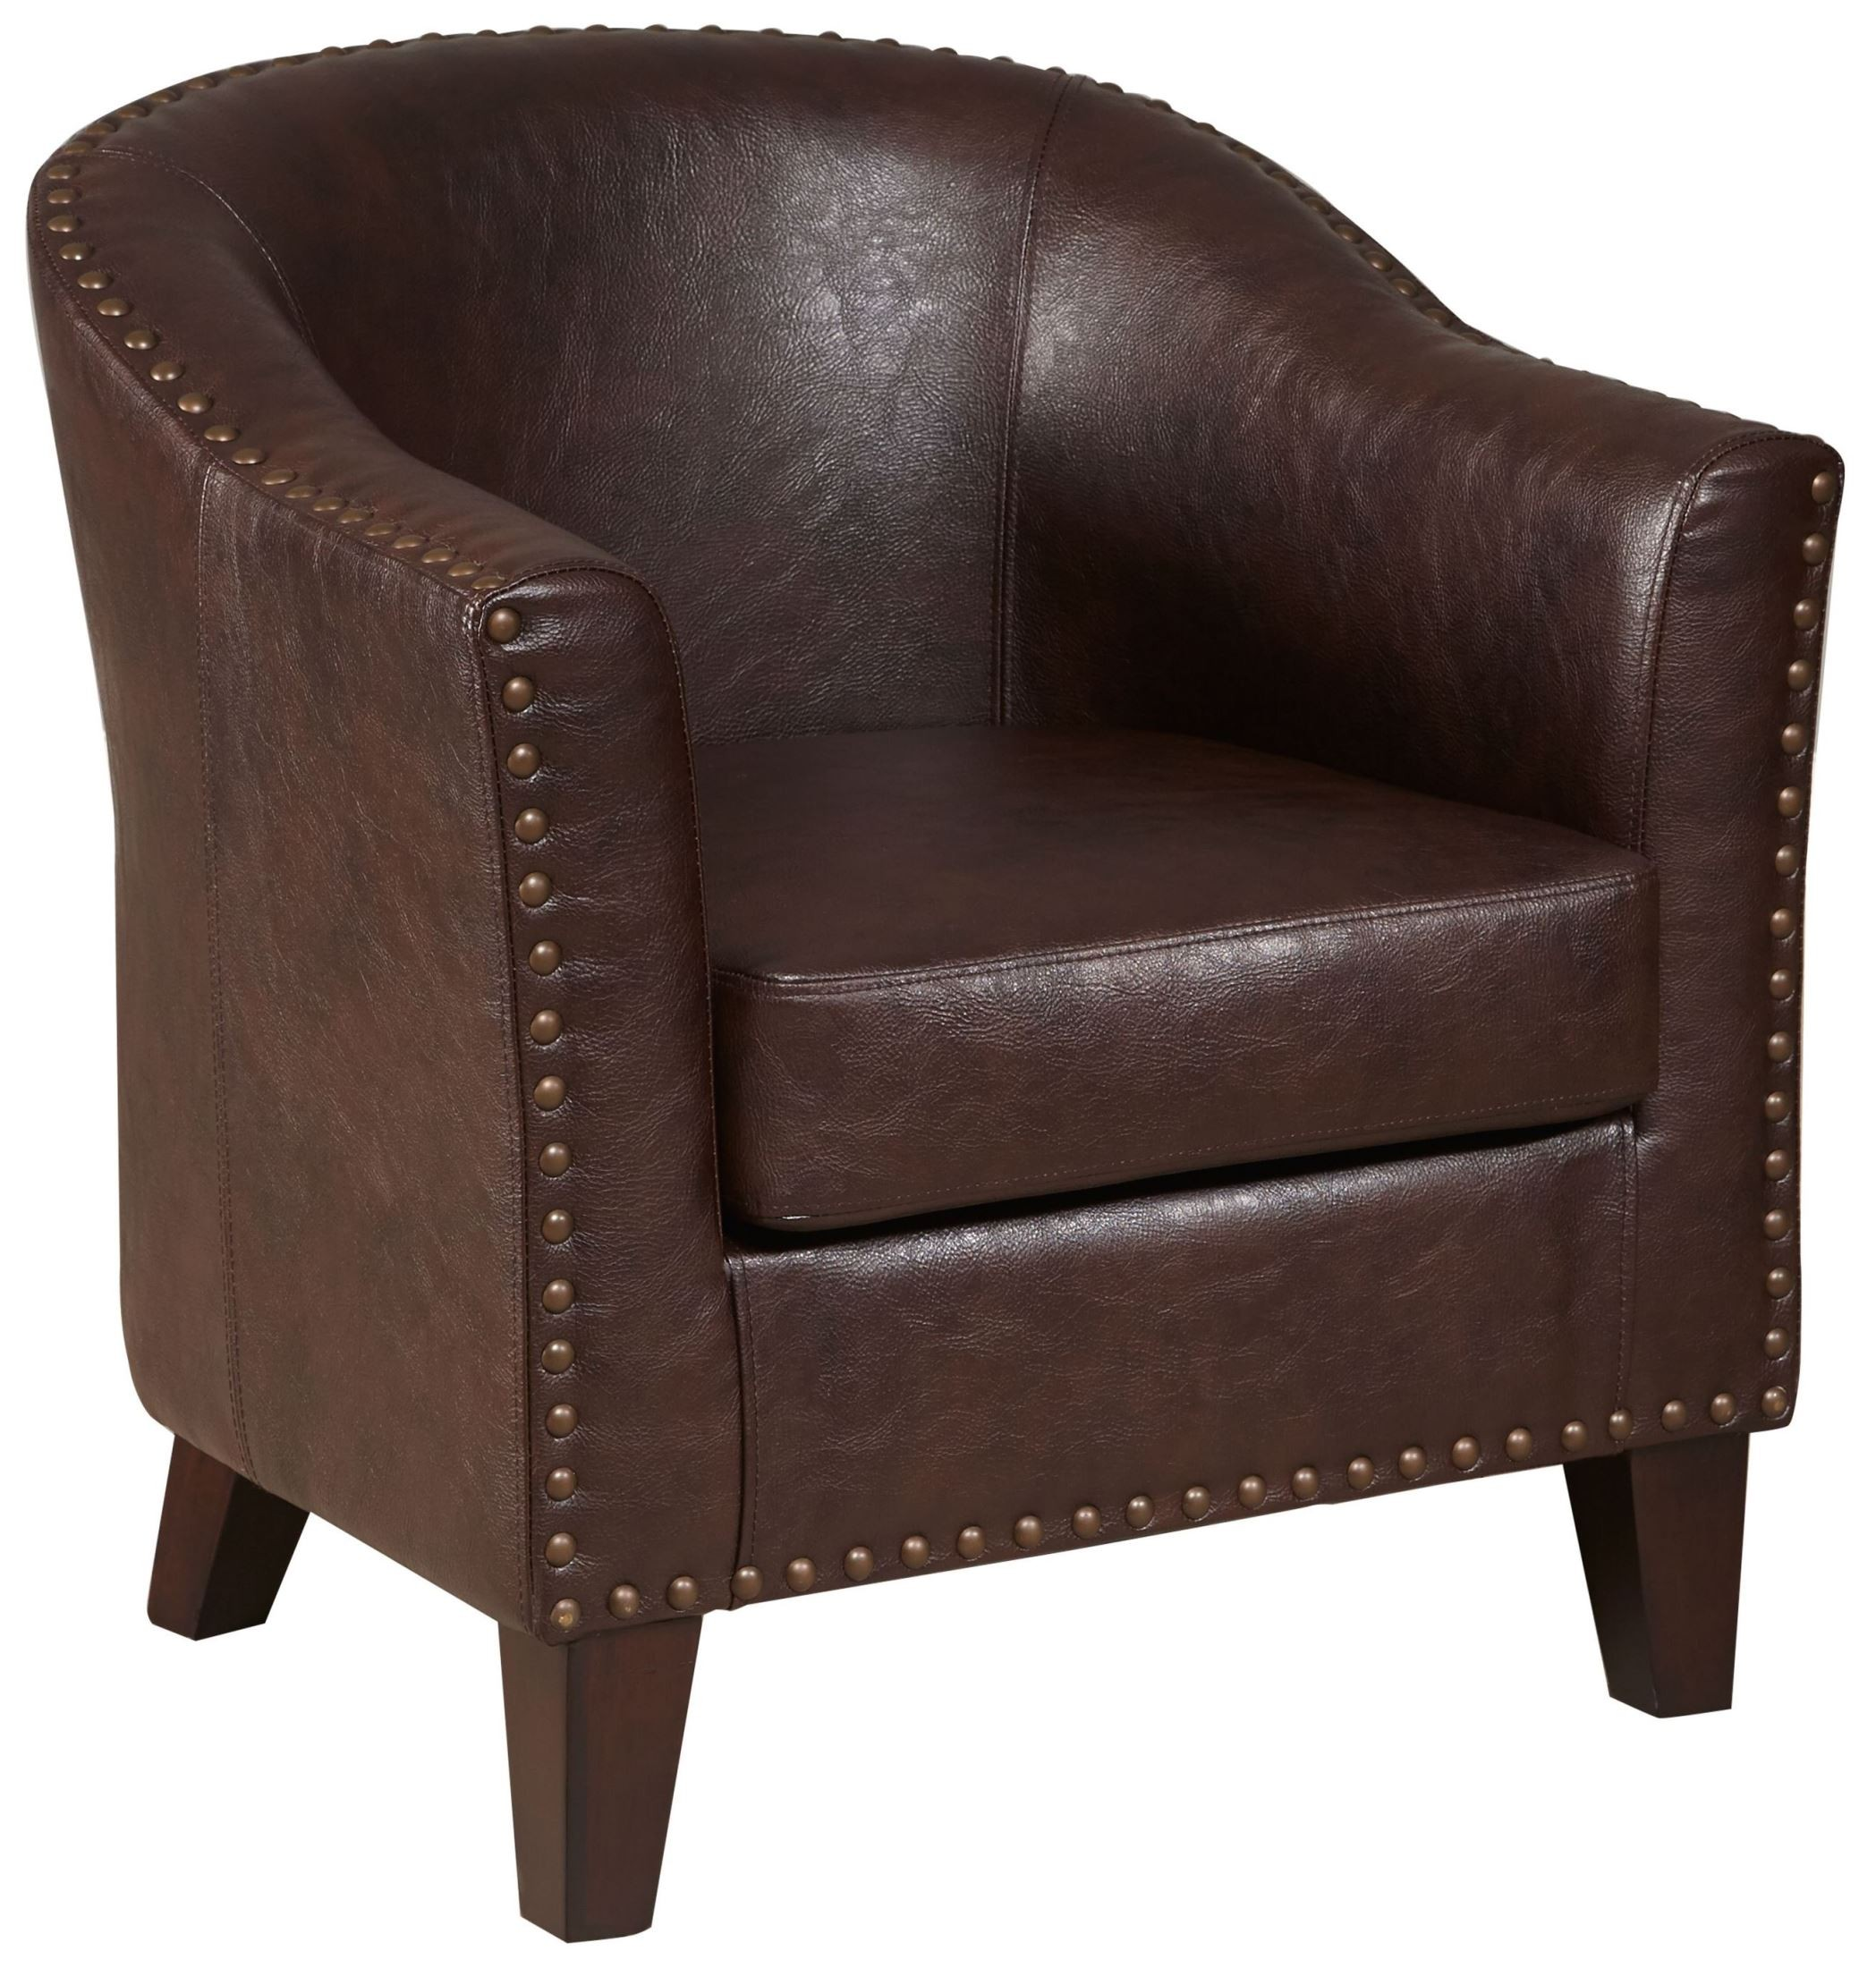 Traditional Warm Brown Upholstered Accent Chair from ...